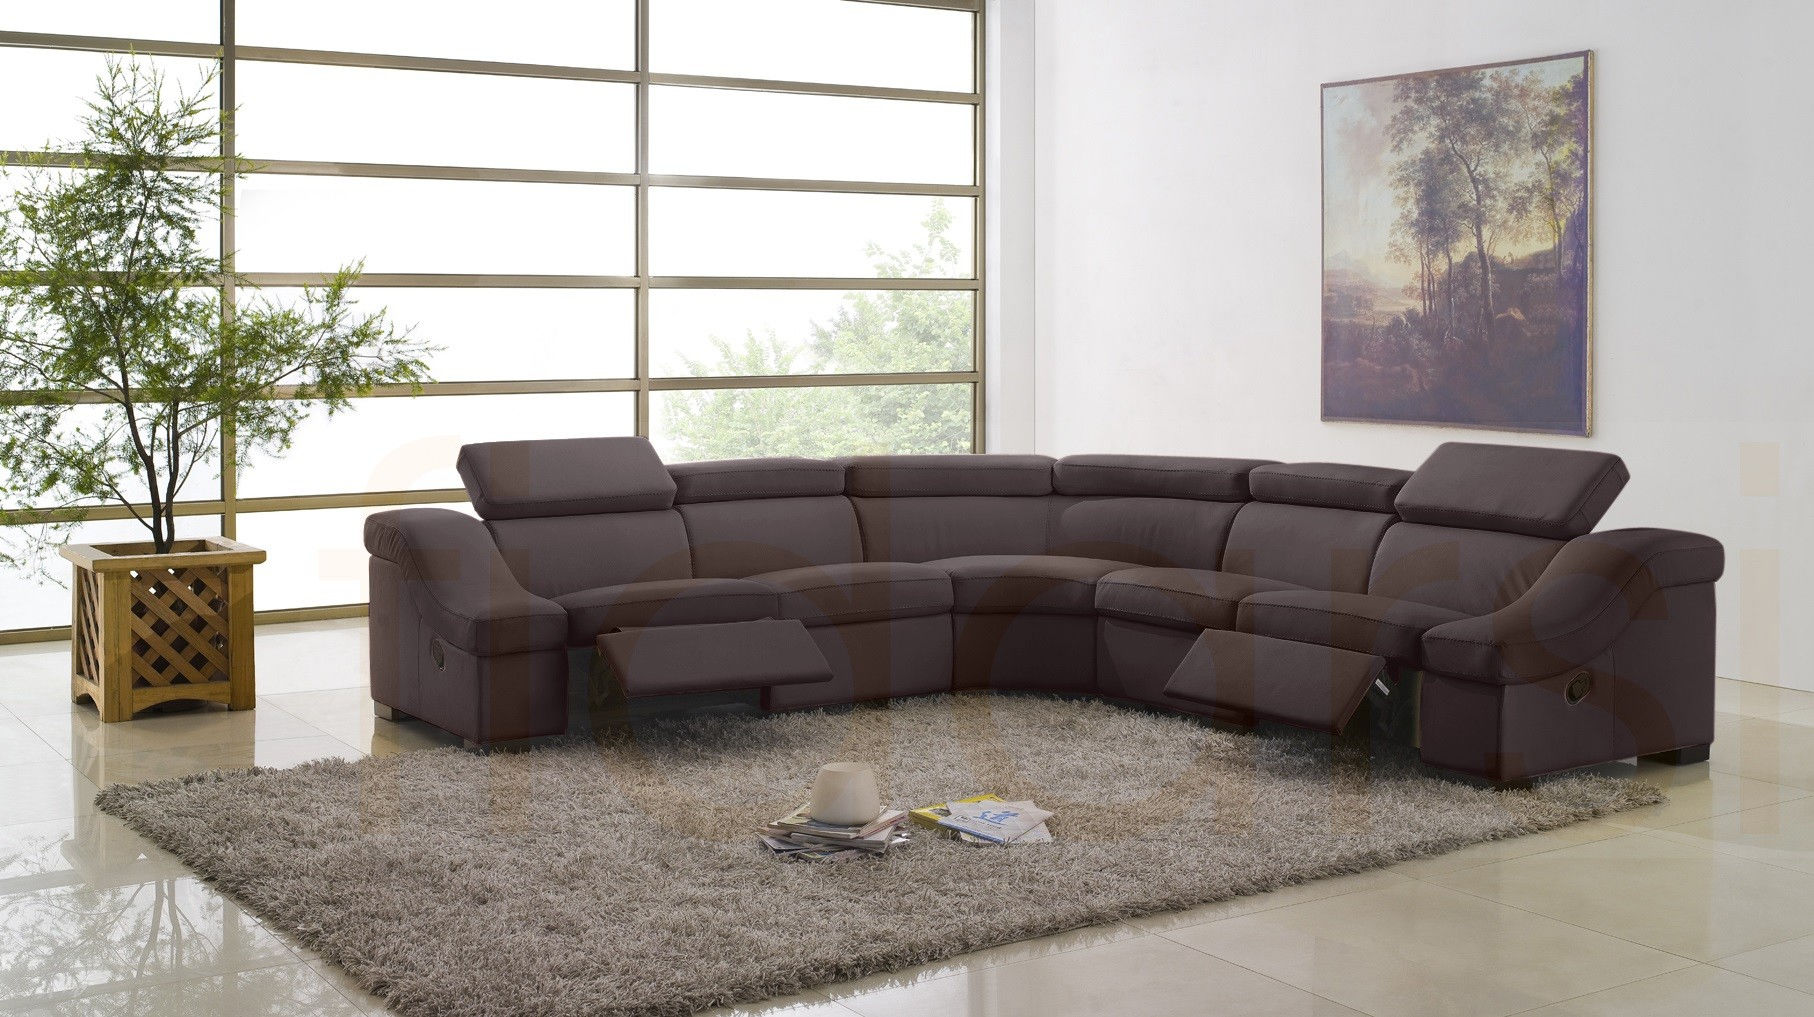 fantastic modern recliner sofa image-Wonderful Modern Recliner sofa Picture